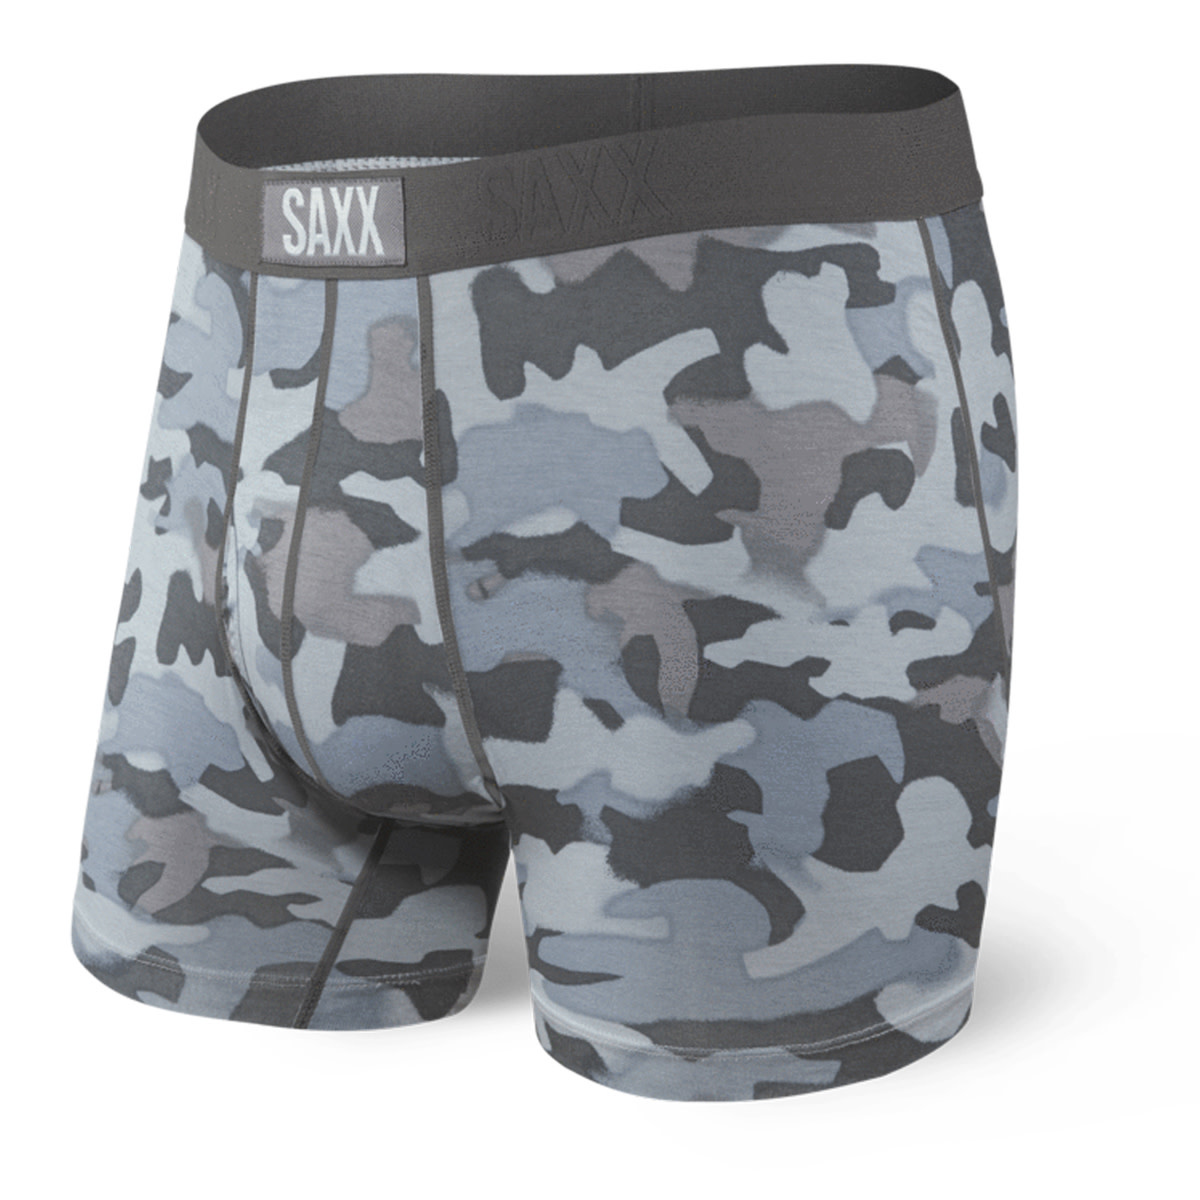 Saxx Ultra Boxer Brief-6